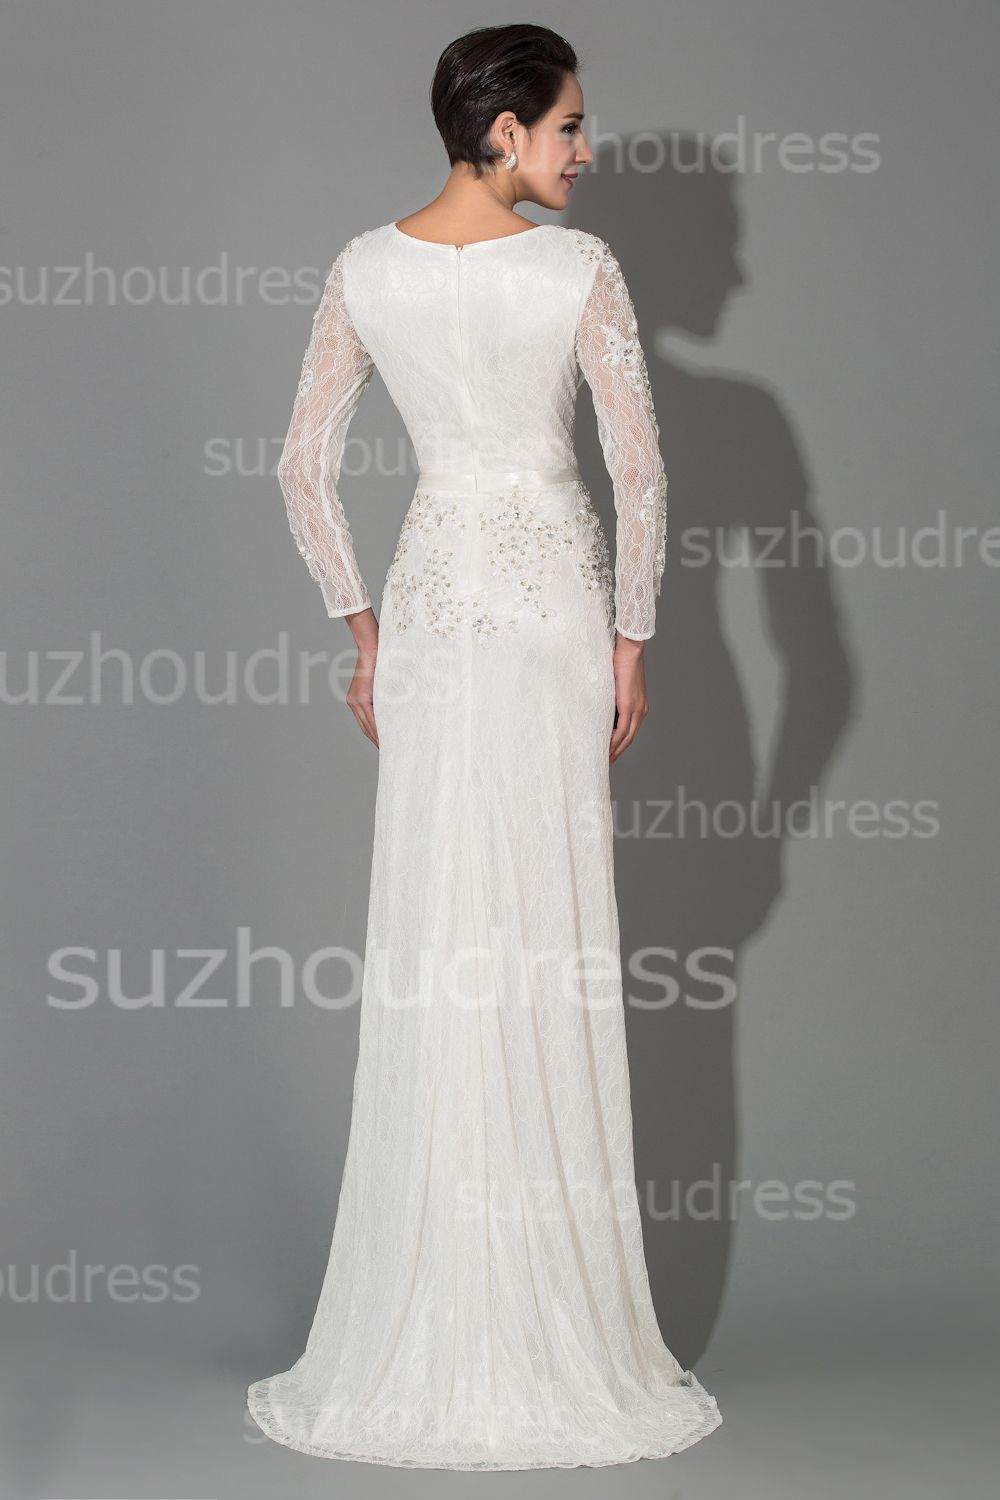 Sexy white lace vneck long sleeve wedding dresses crystal popular